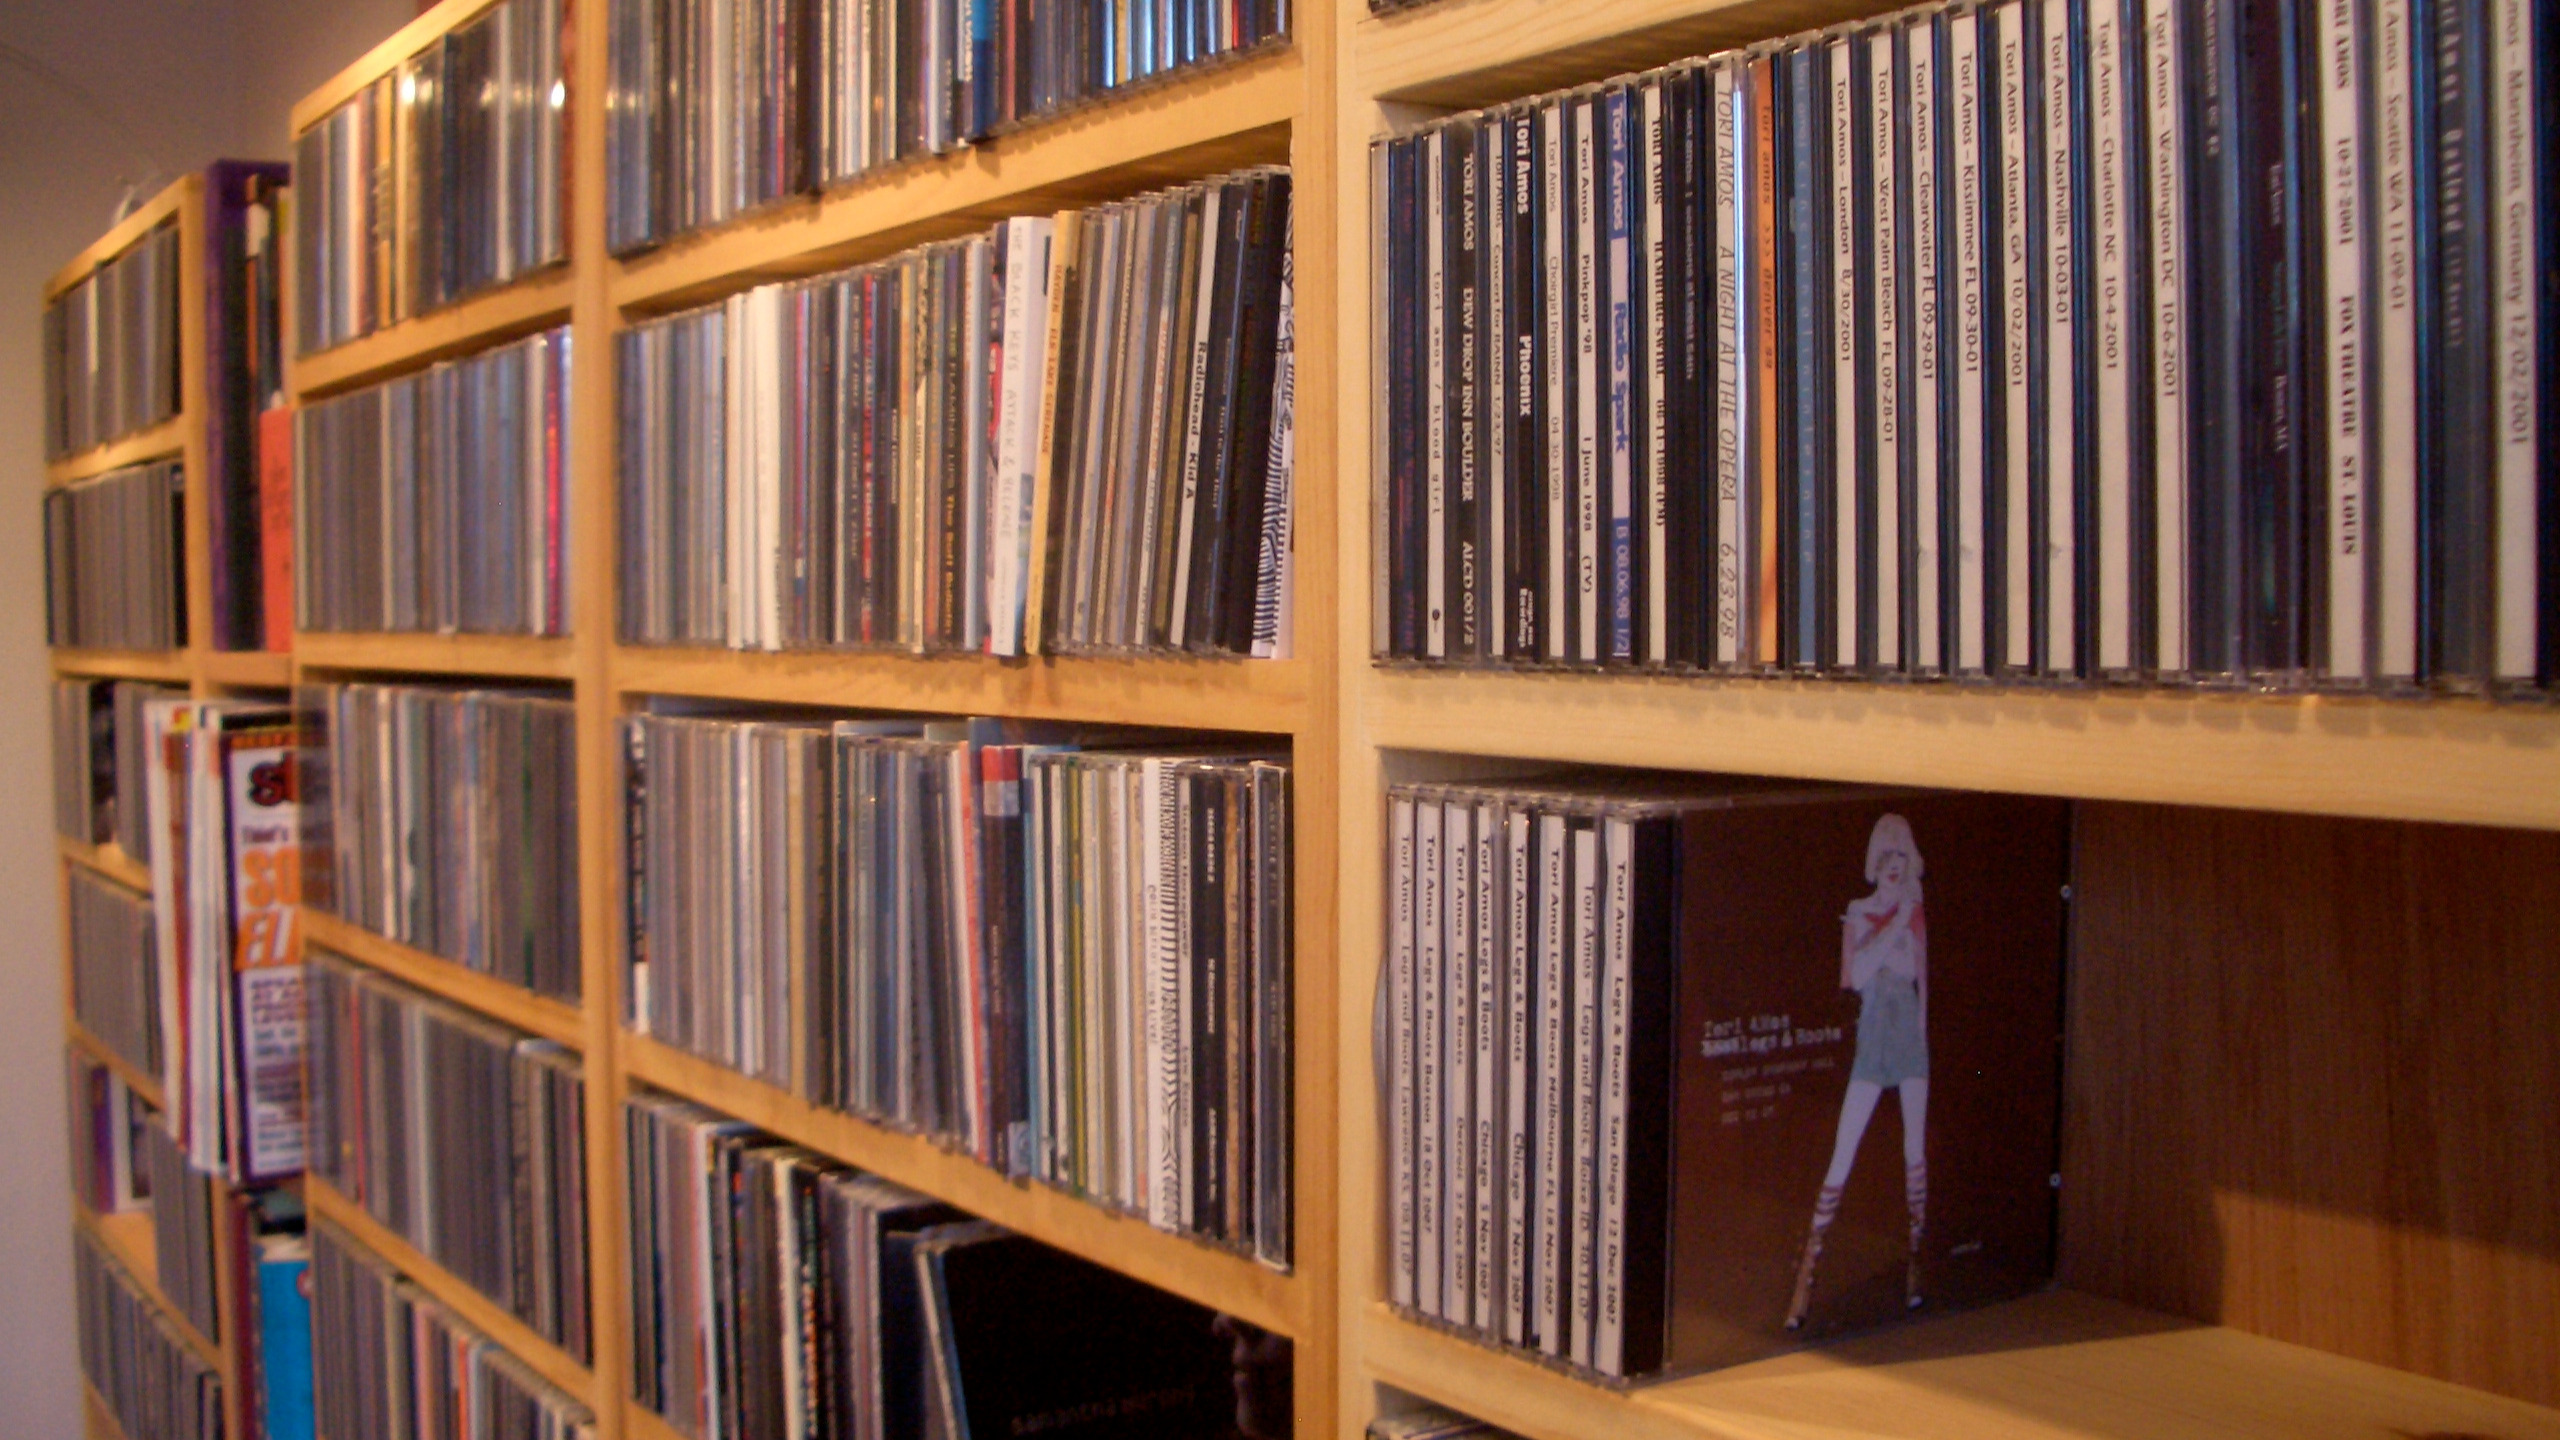 Bookcase of CDs